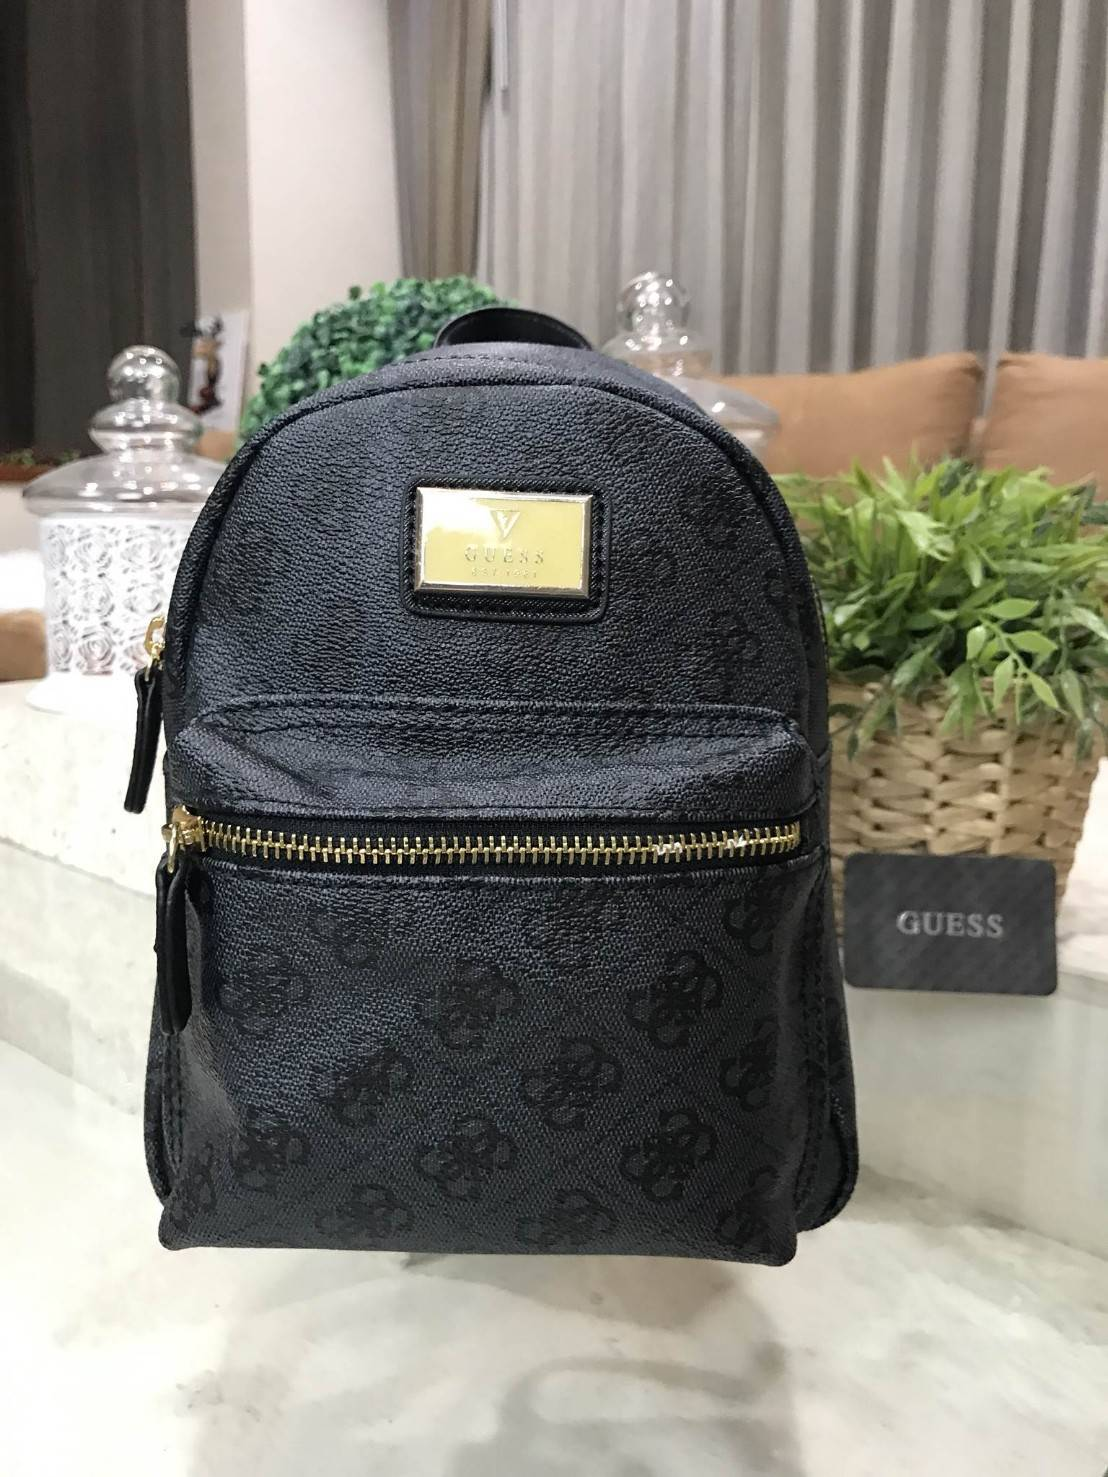 GUESS WOMAN BACKPACK 2018 free ถุงผ้า